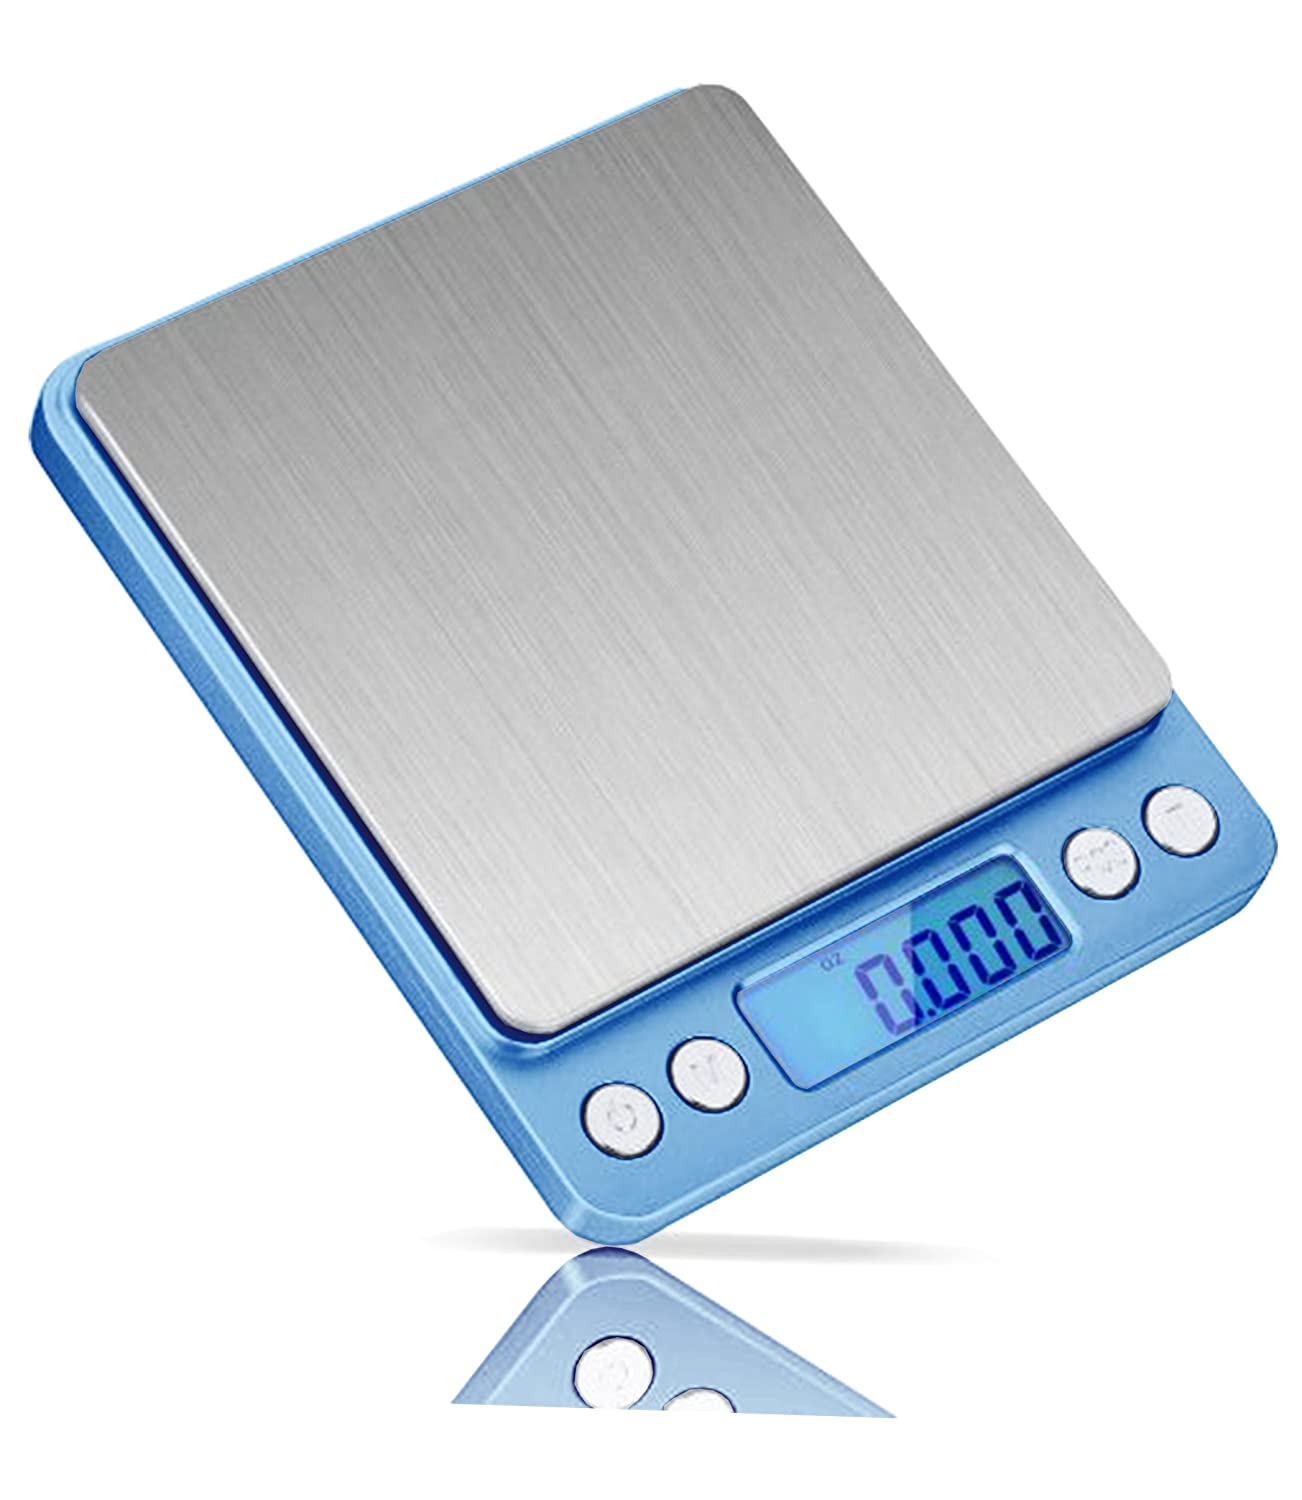 New Digital Scale Multi Purpose Capacity 500grms/16 oz. Silver Stars JPS120